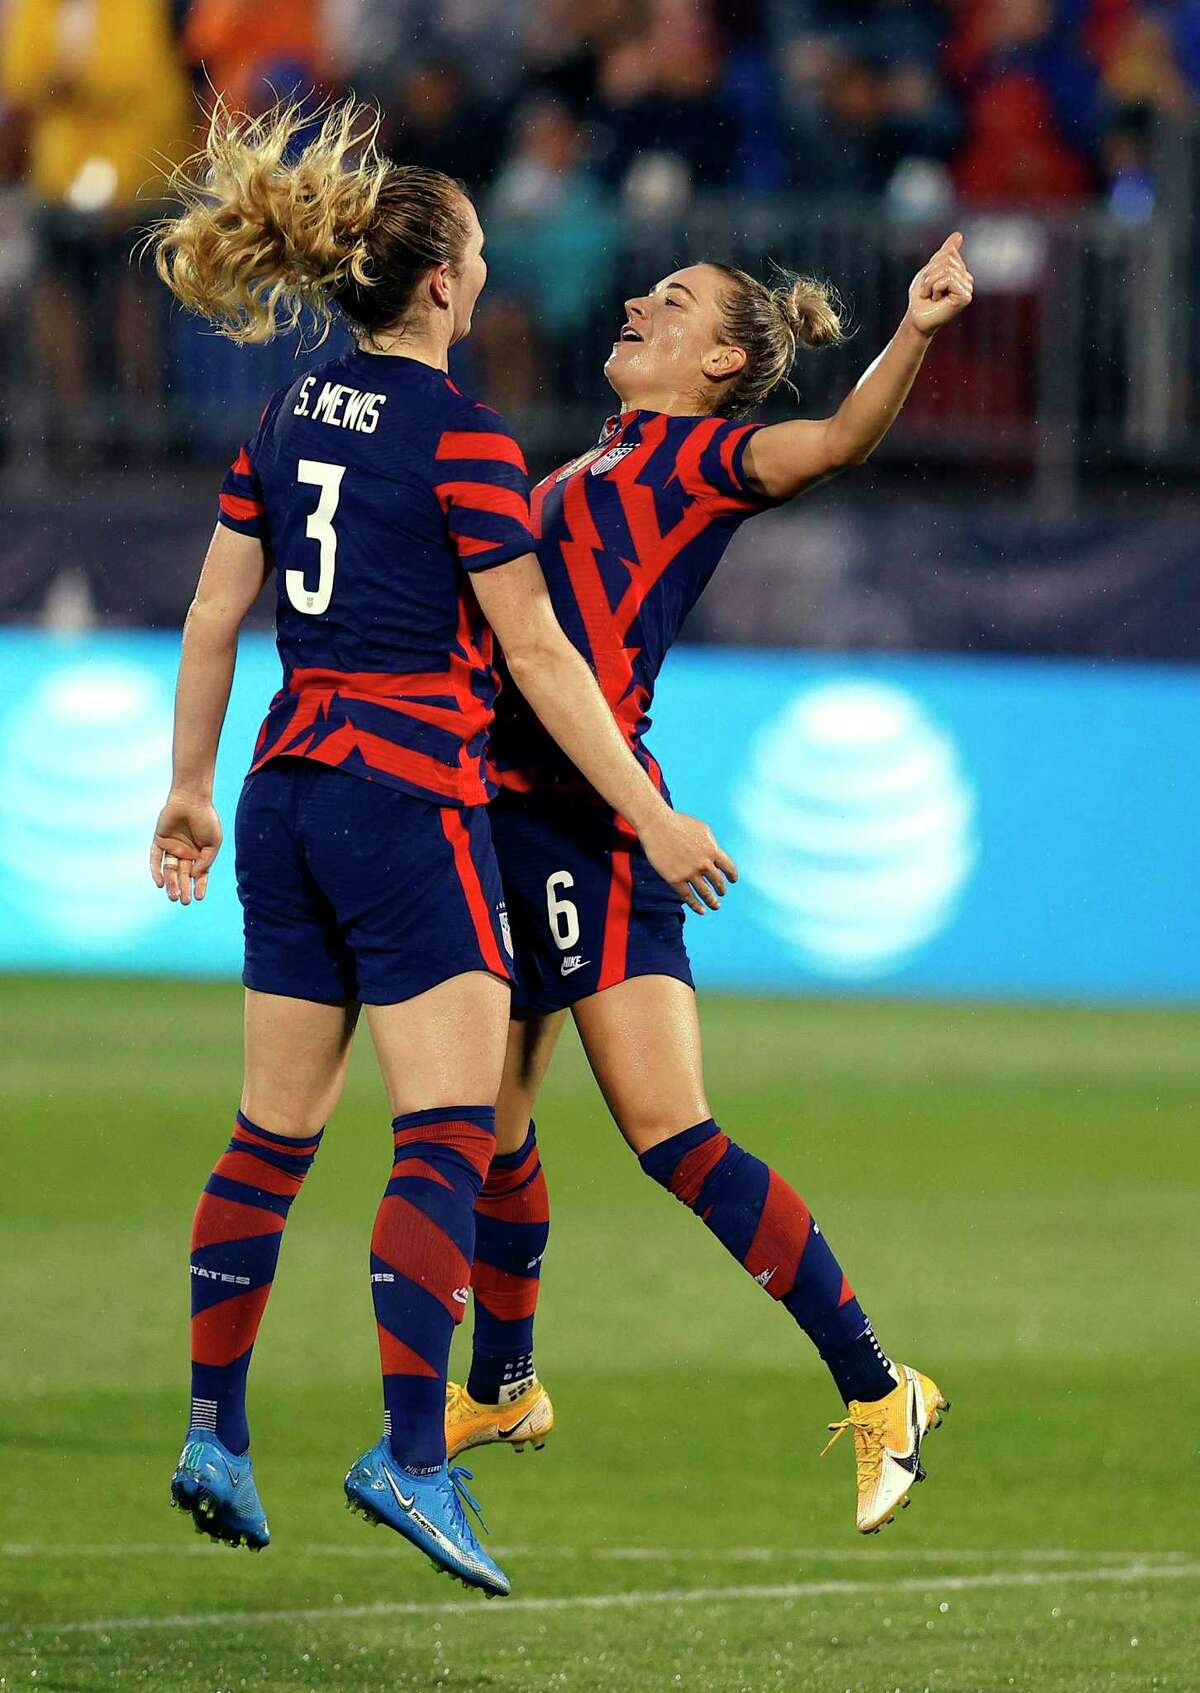 EAST HARTFORD, CONNECTICUT - JULY 01: Samantha Mewis #3 of the United States celebrates with Kristie Mewis #6 after scoring a goal against Mexico at Rentschler Field on July 01, 2021 in East Hartford, Connecticut. (Photo by Maddie Meyer/Getty Images)